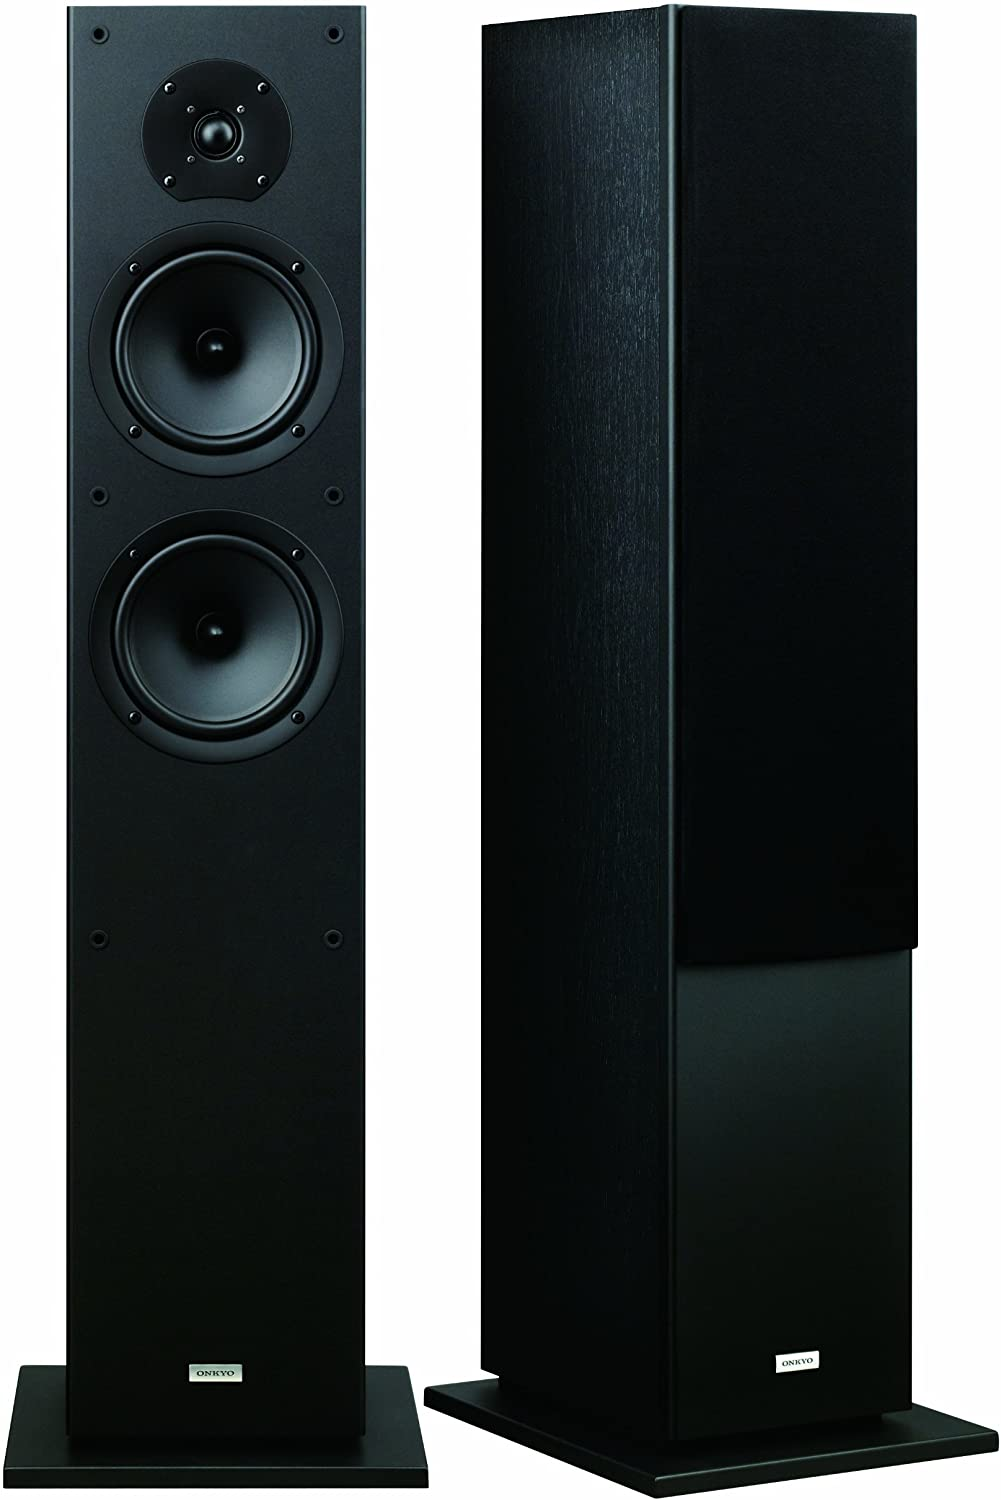 Onkyo SKF-4800 2-Way Bass Reflex Floor-Standing Speakers